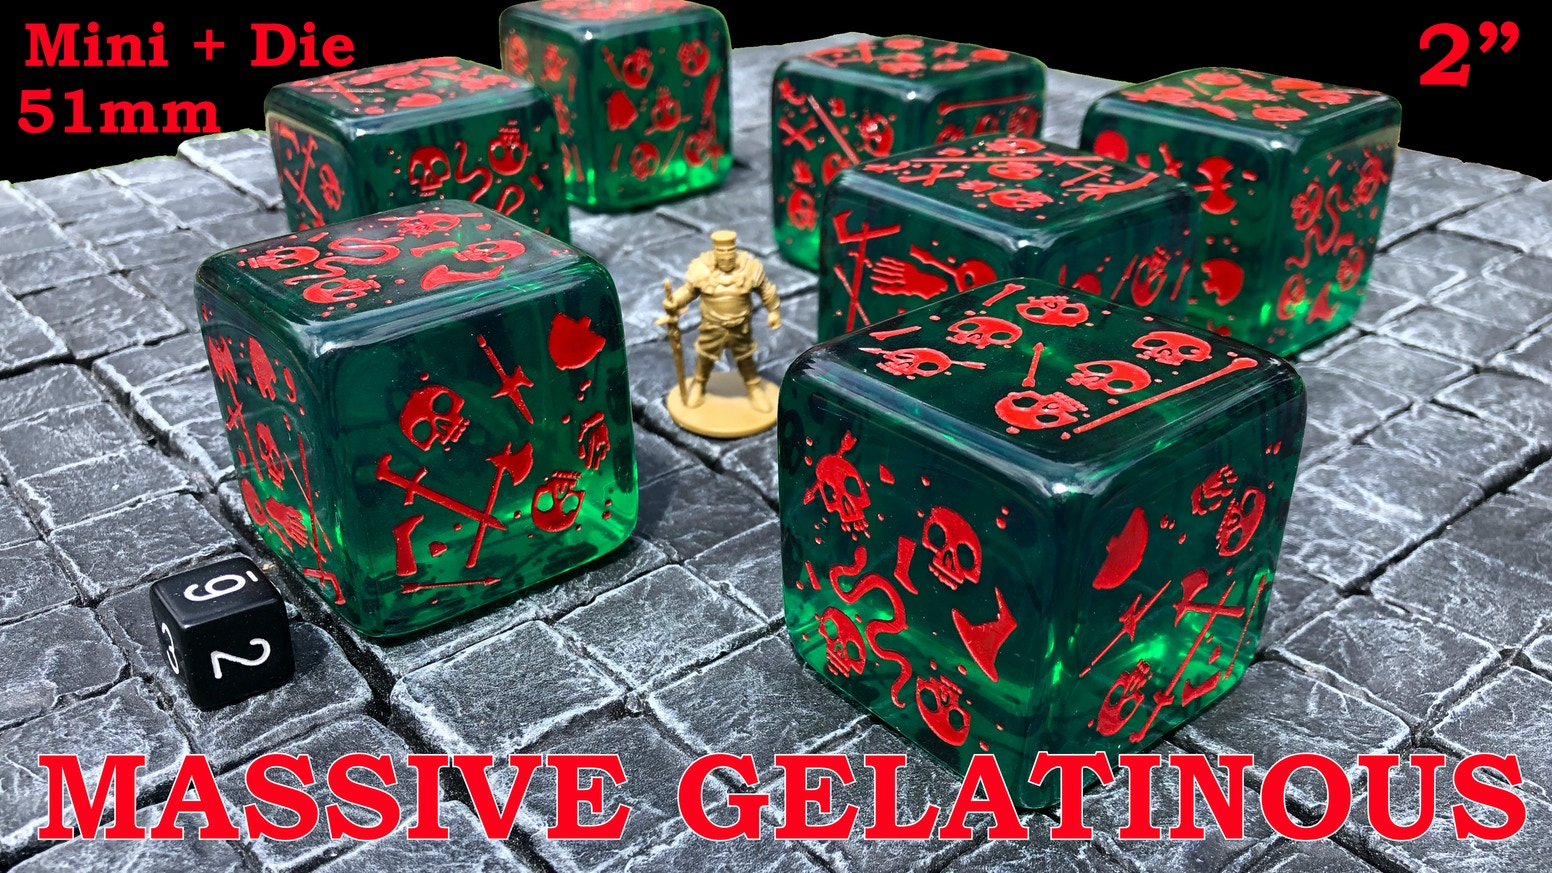 The pips (dots) are skulls on this 2 inch (51mm) gelatinous cube mini that is also a six-sided die (D6).